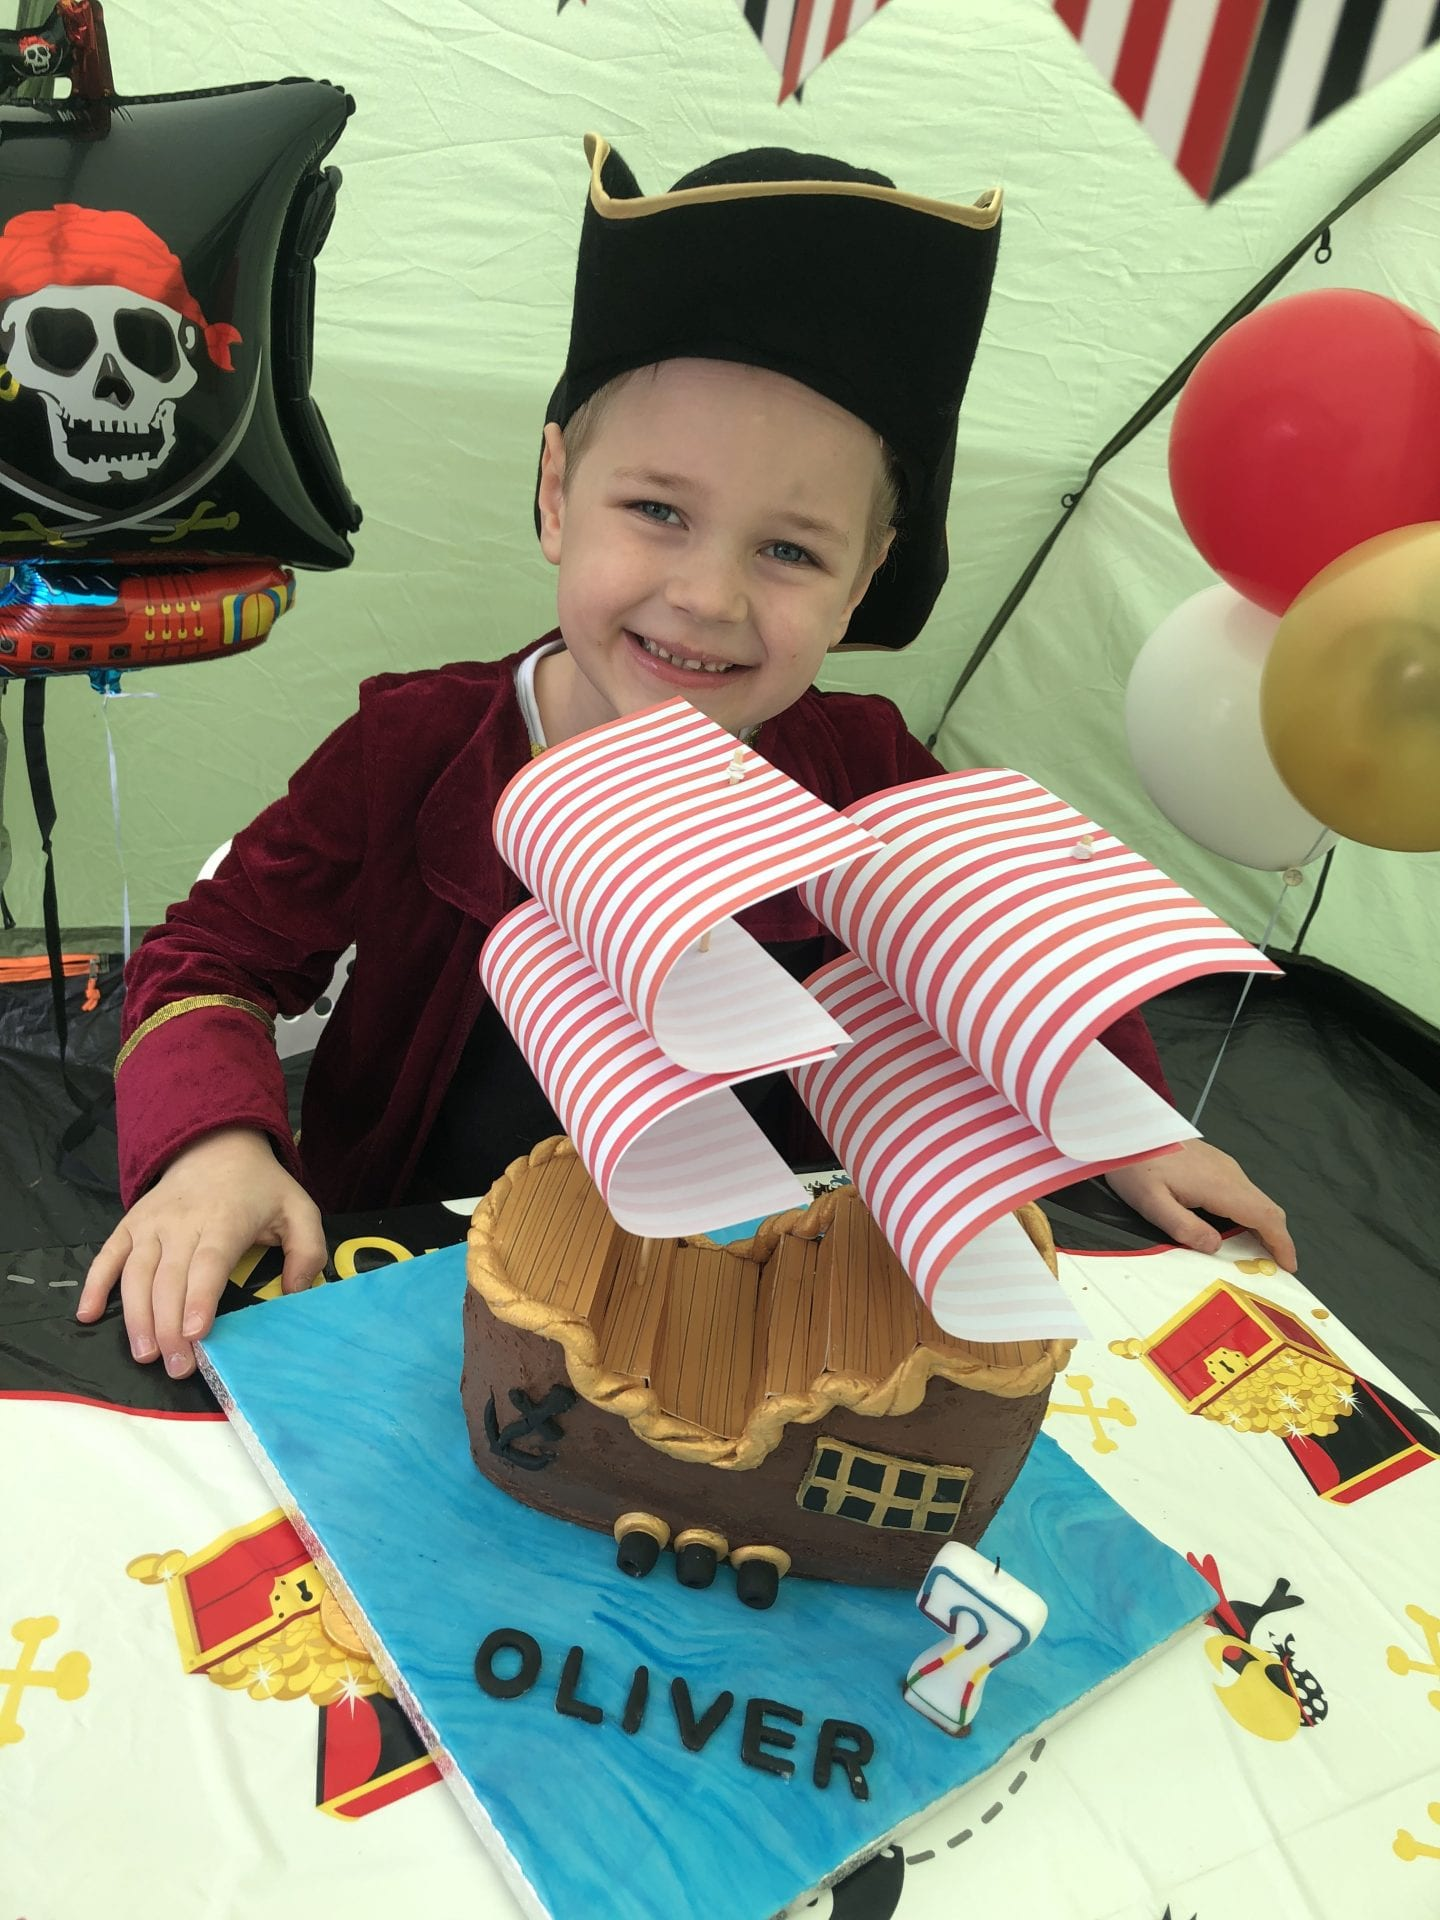 Oliver sat behind his pirate ship birthday cake